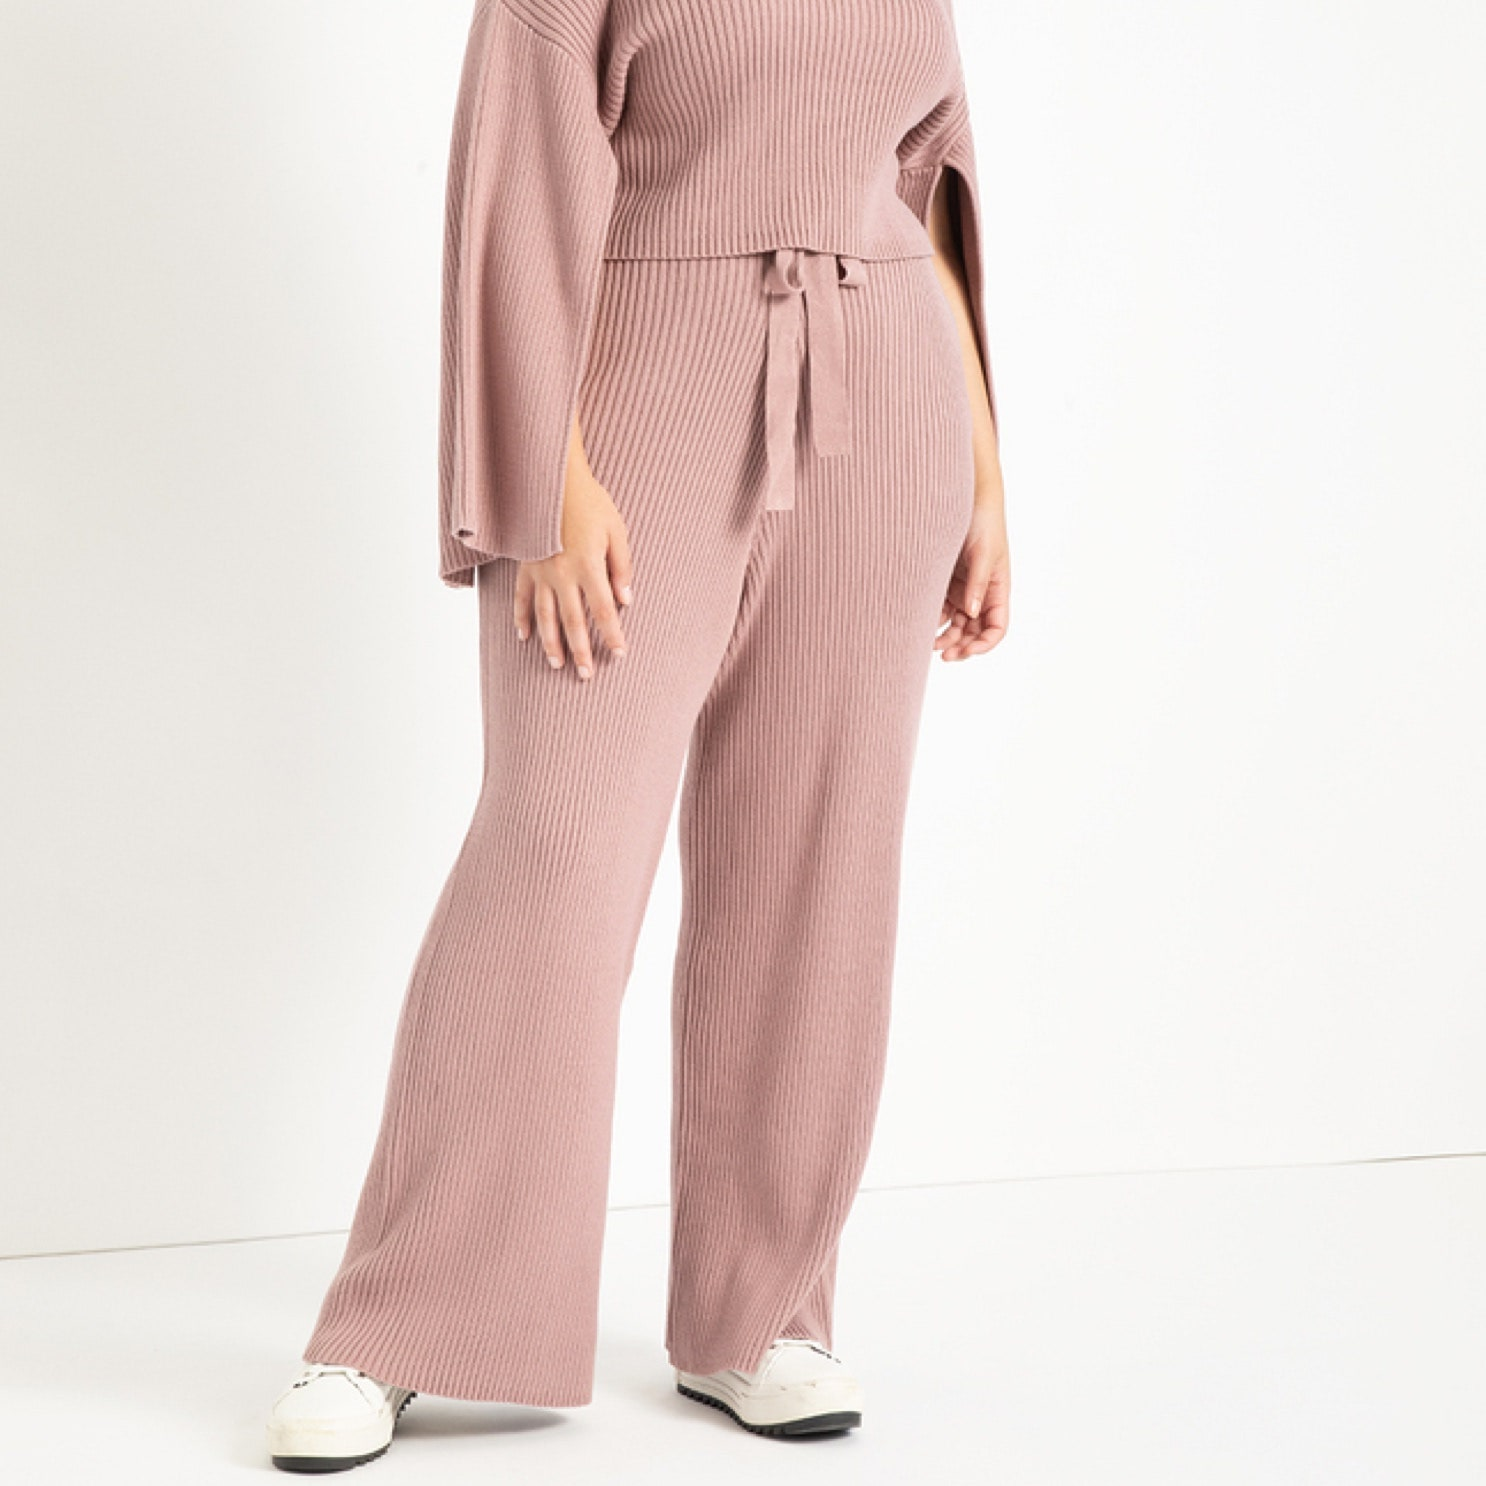 model wearing pink ribbed sweater pants